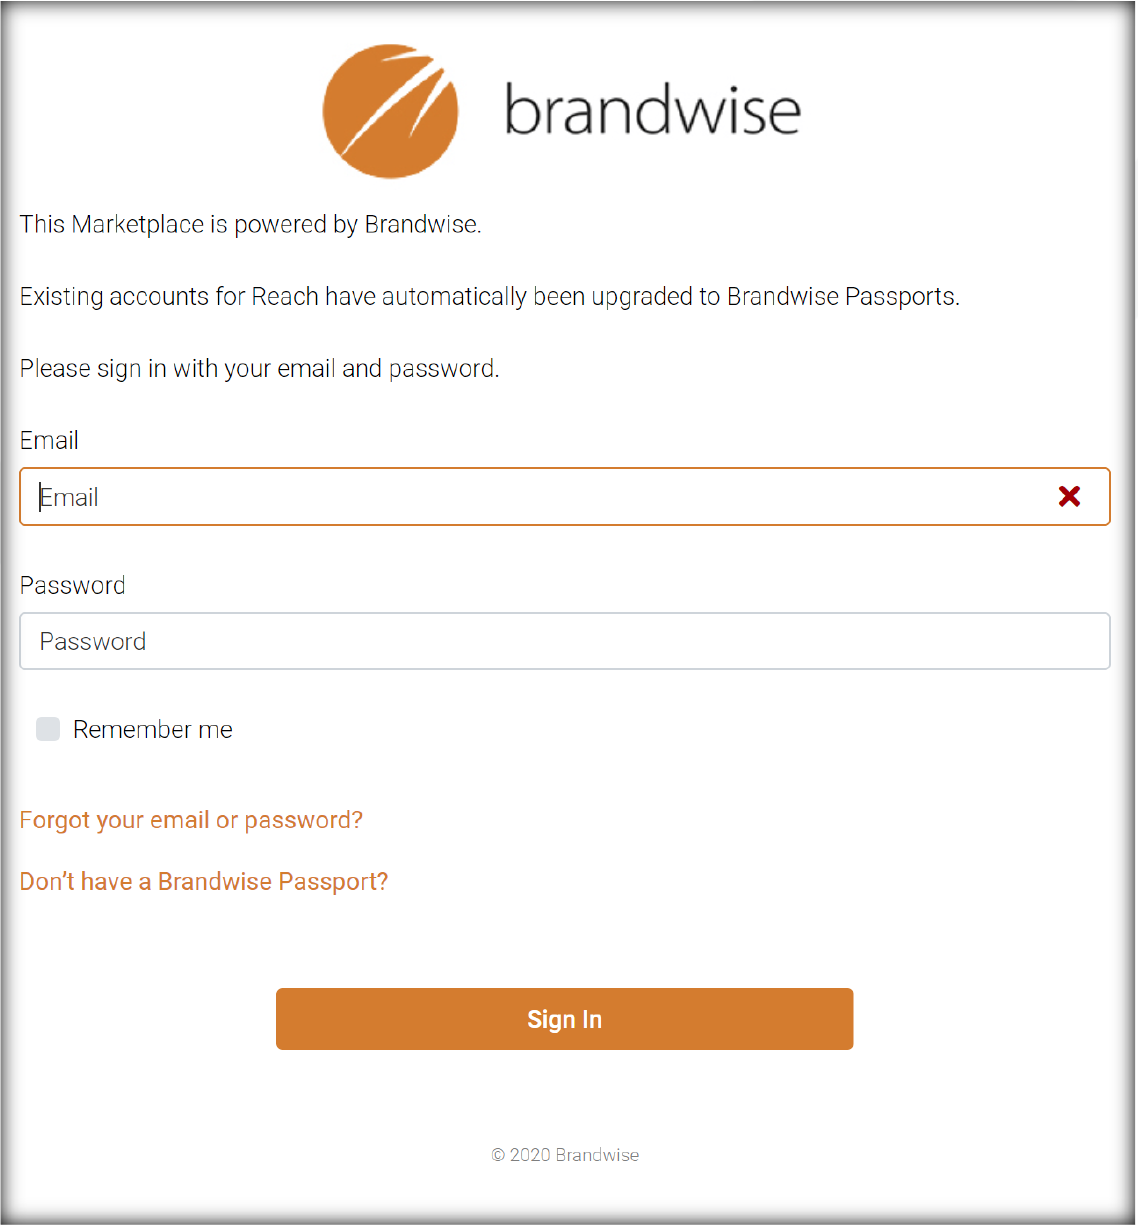 and! Sales Brandwise Passport Step by Step 1